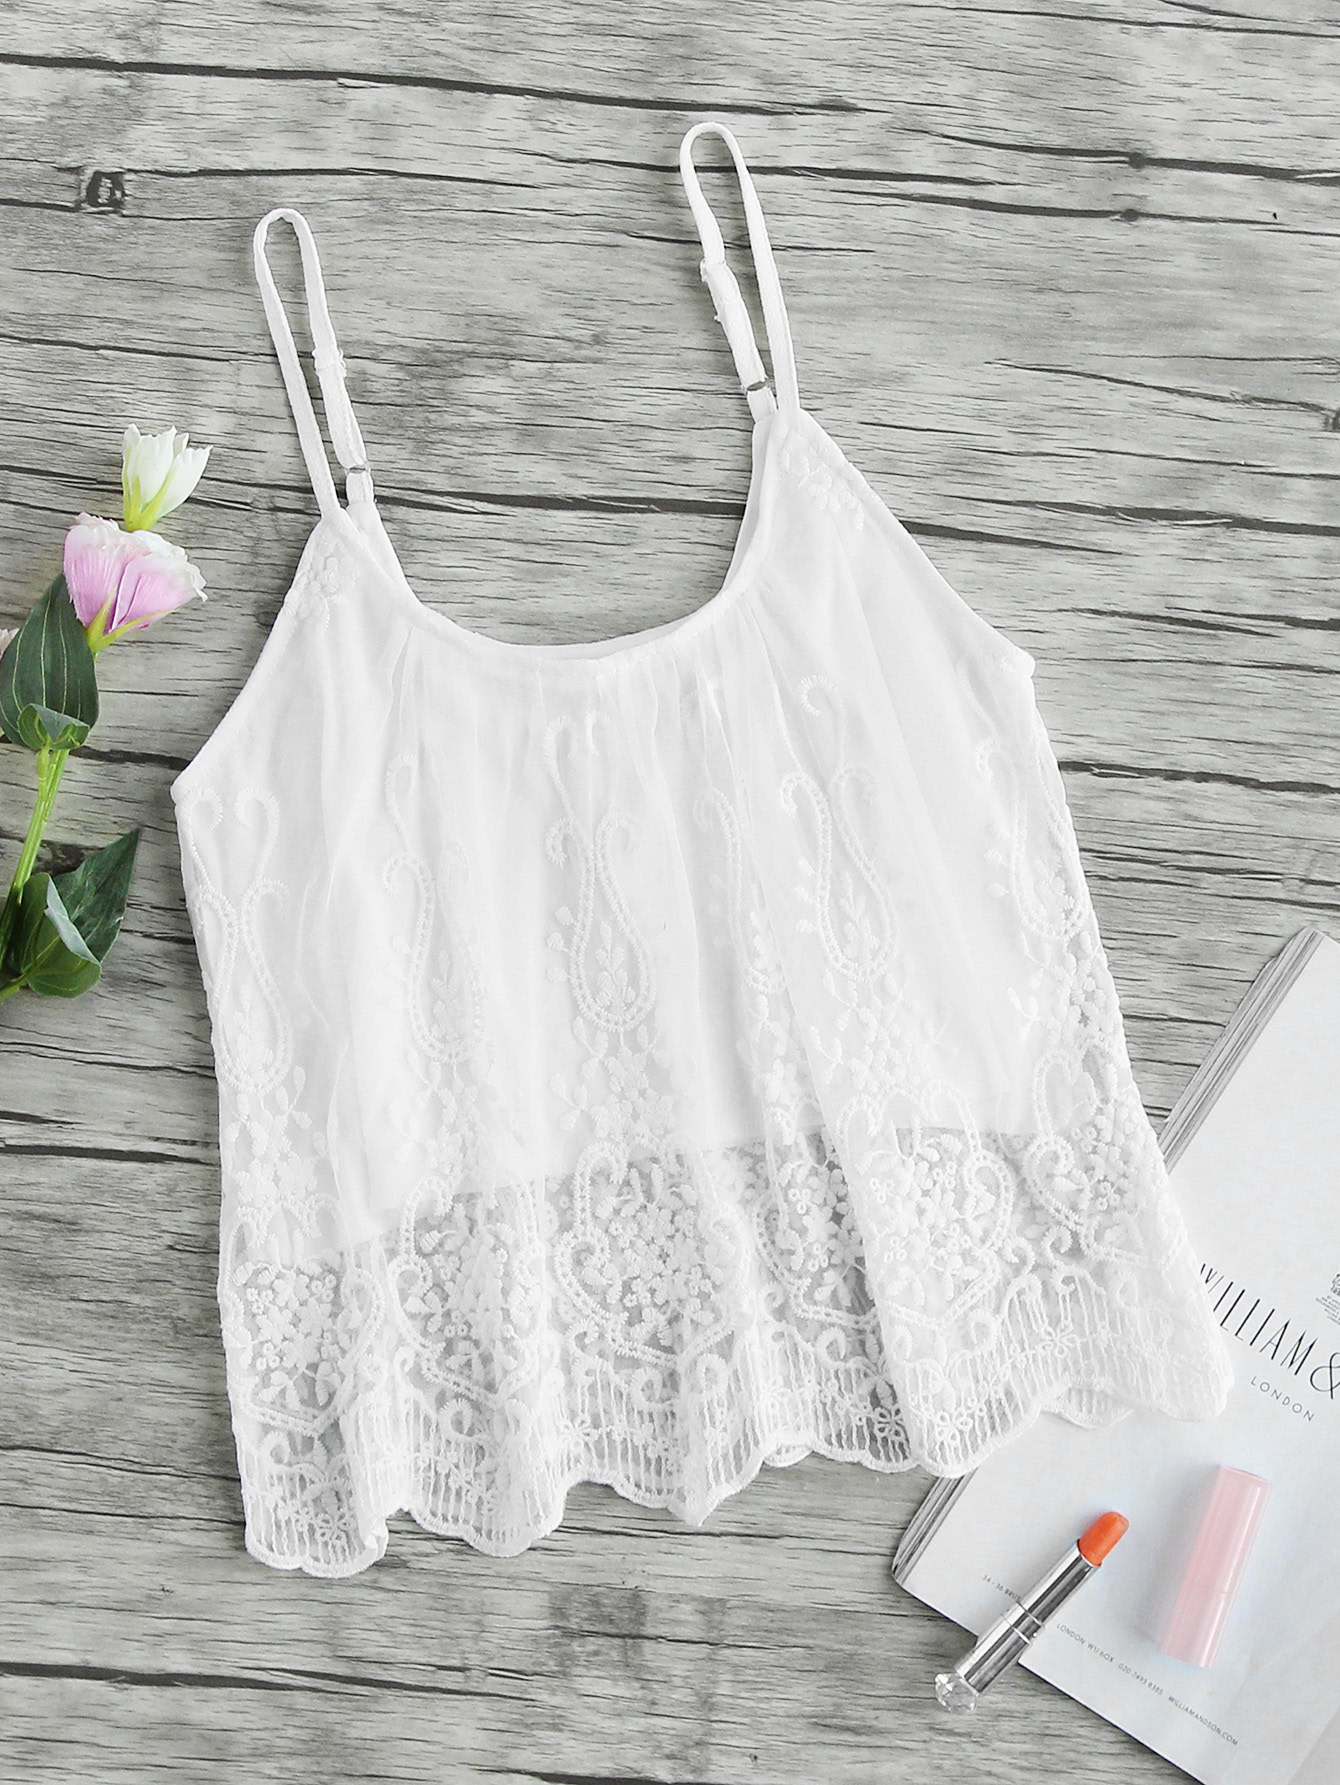 Scallop Embroidered Mesh Overlay Cami Top scallop embroidered mesh overlay cami top